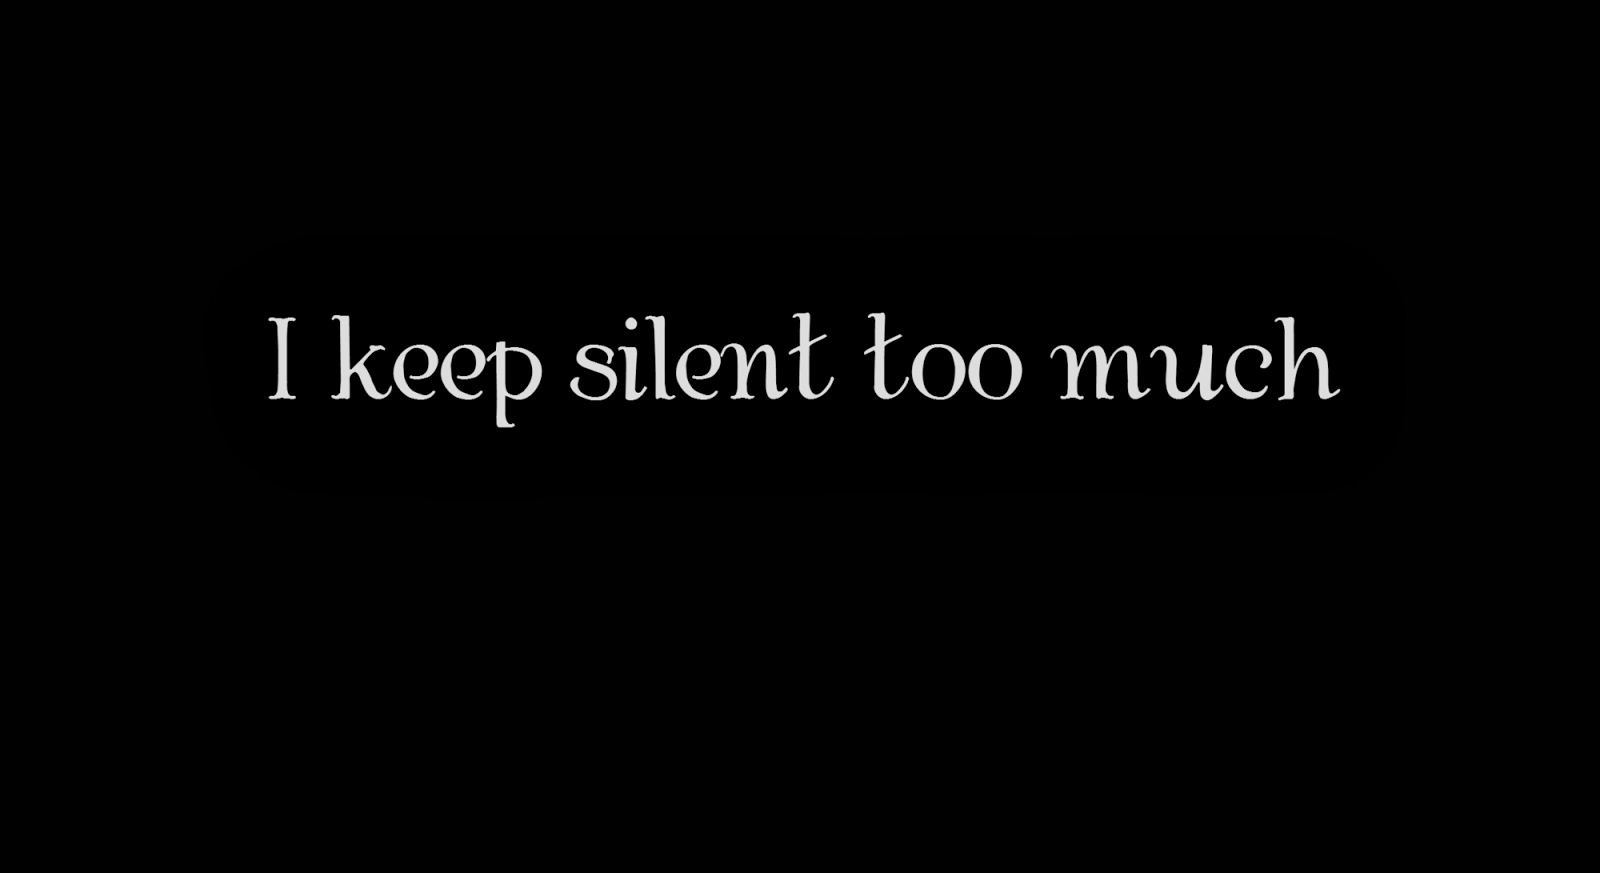 I keep silent too much